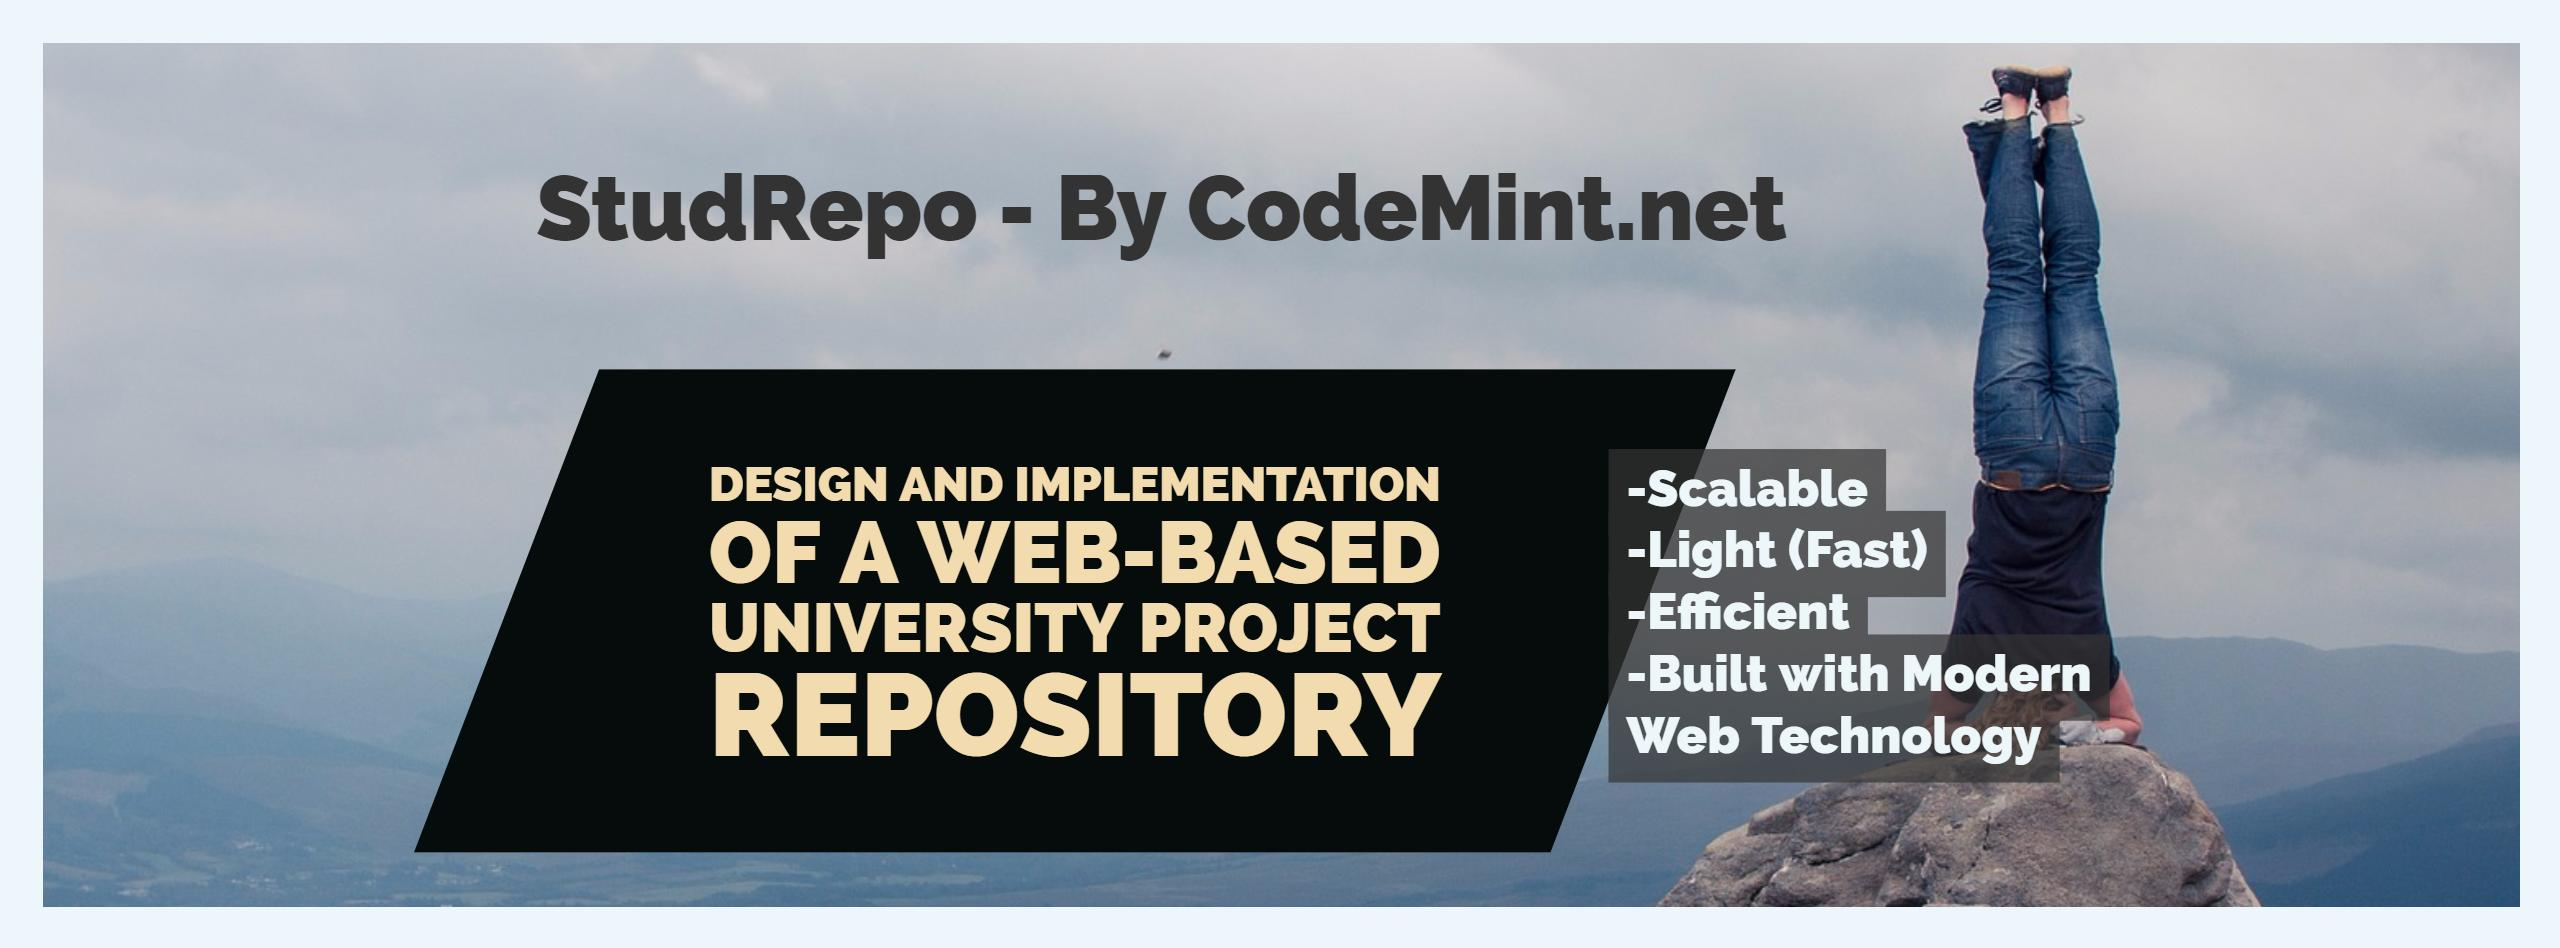 StudRepo - A Design and Implementation of a Project Repository for University Projects